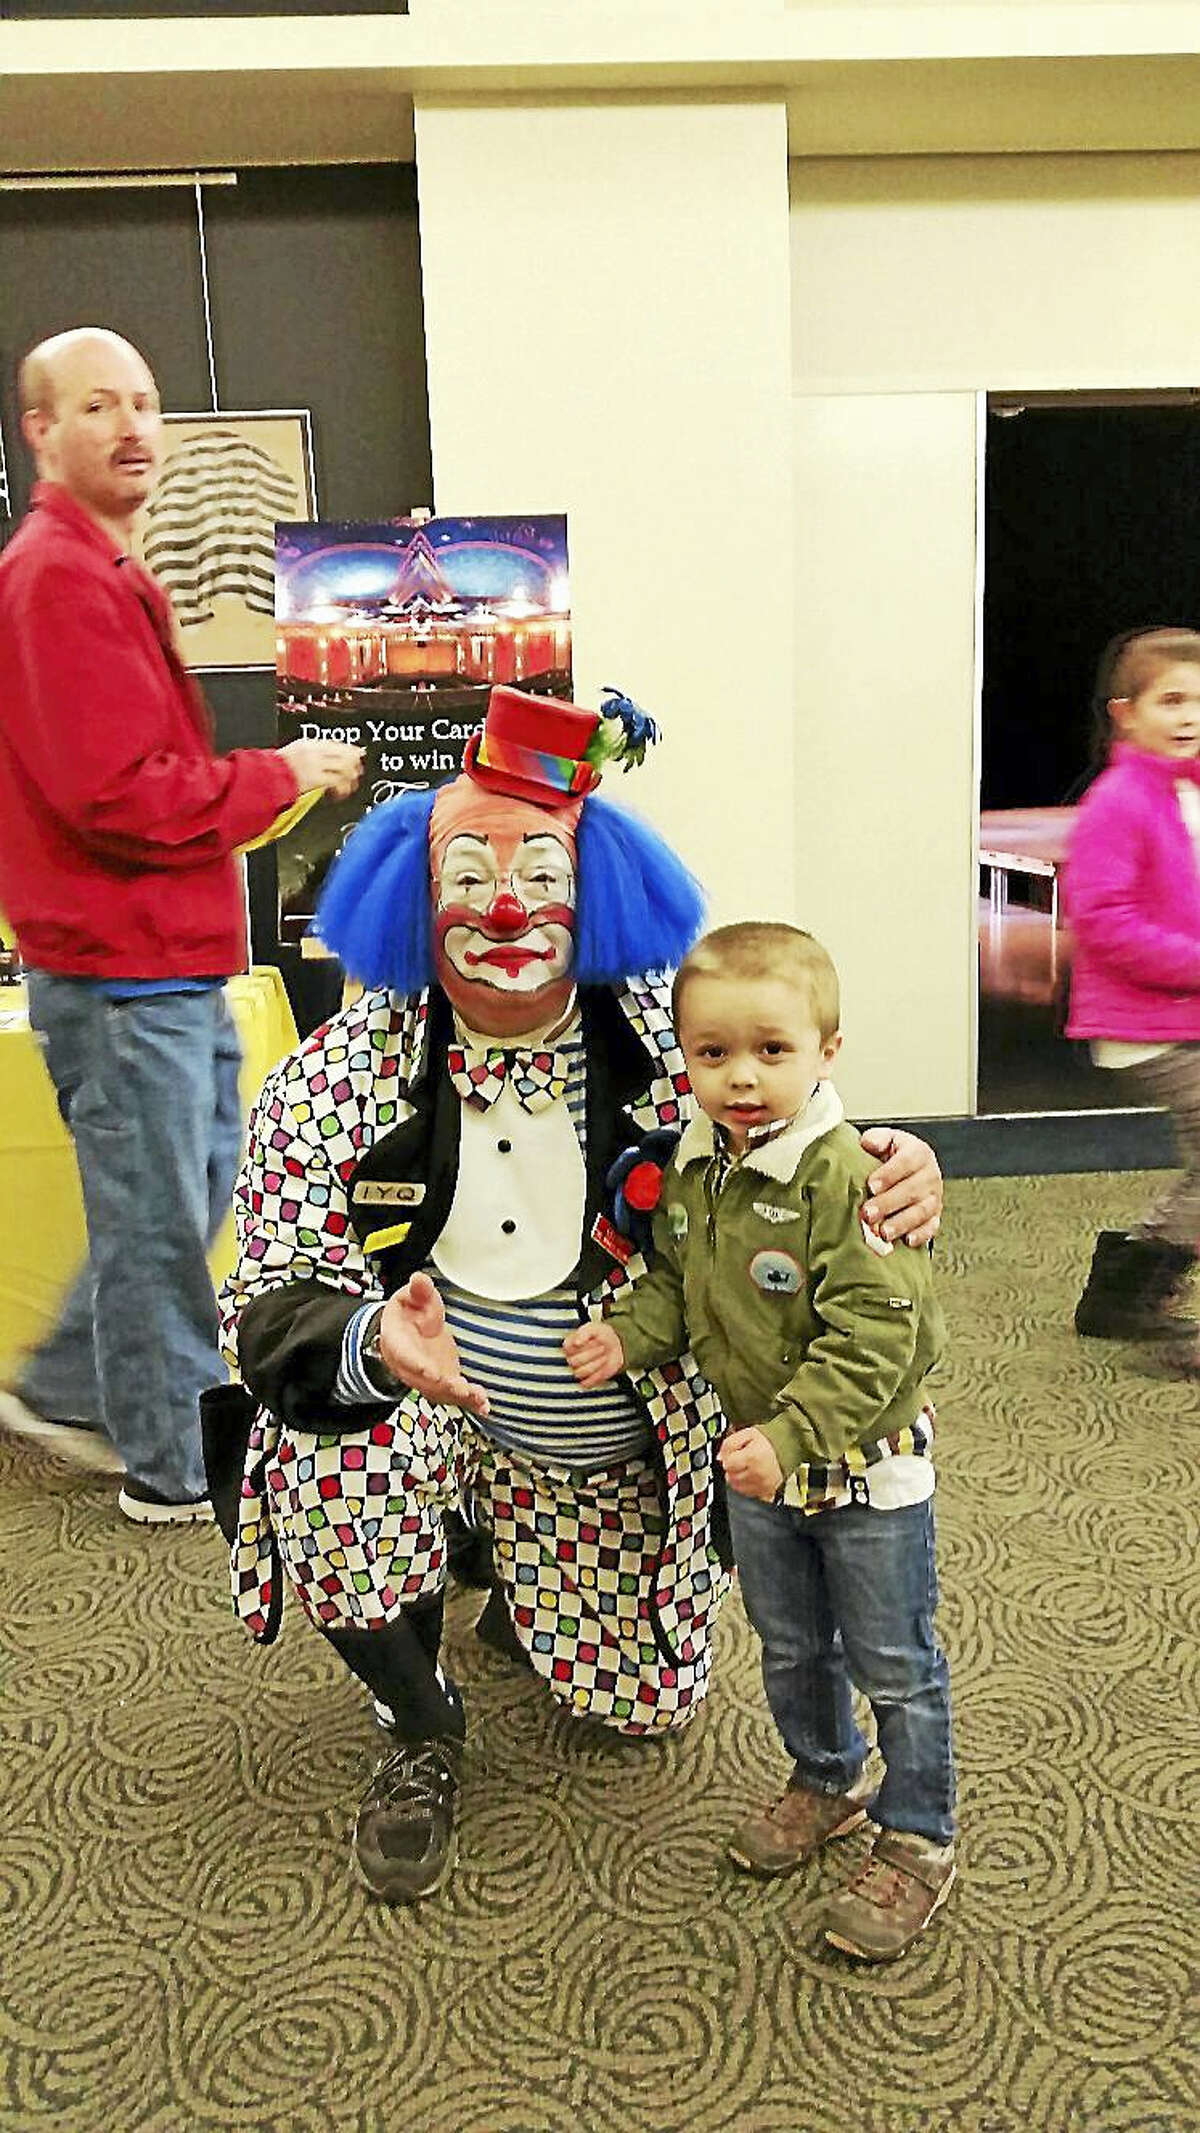 Lefty the Clown poses with Austin Brooks, 3, of New Hartford at the KidsPlay Children's Museum's second annual Family Fun Fair at the Warner Theatre.